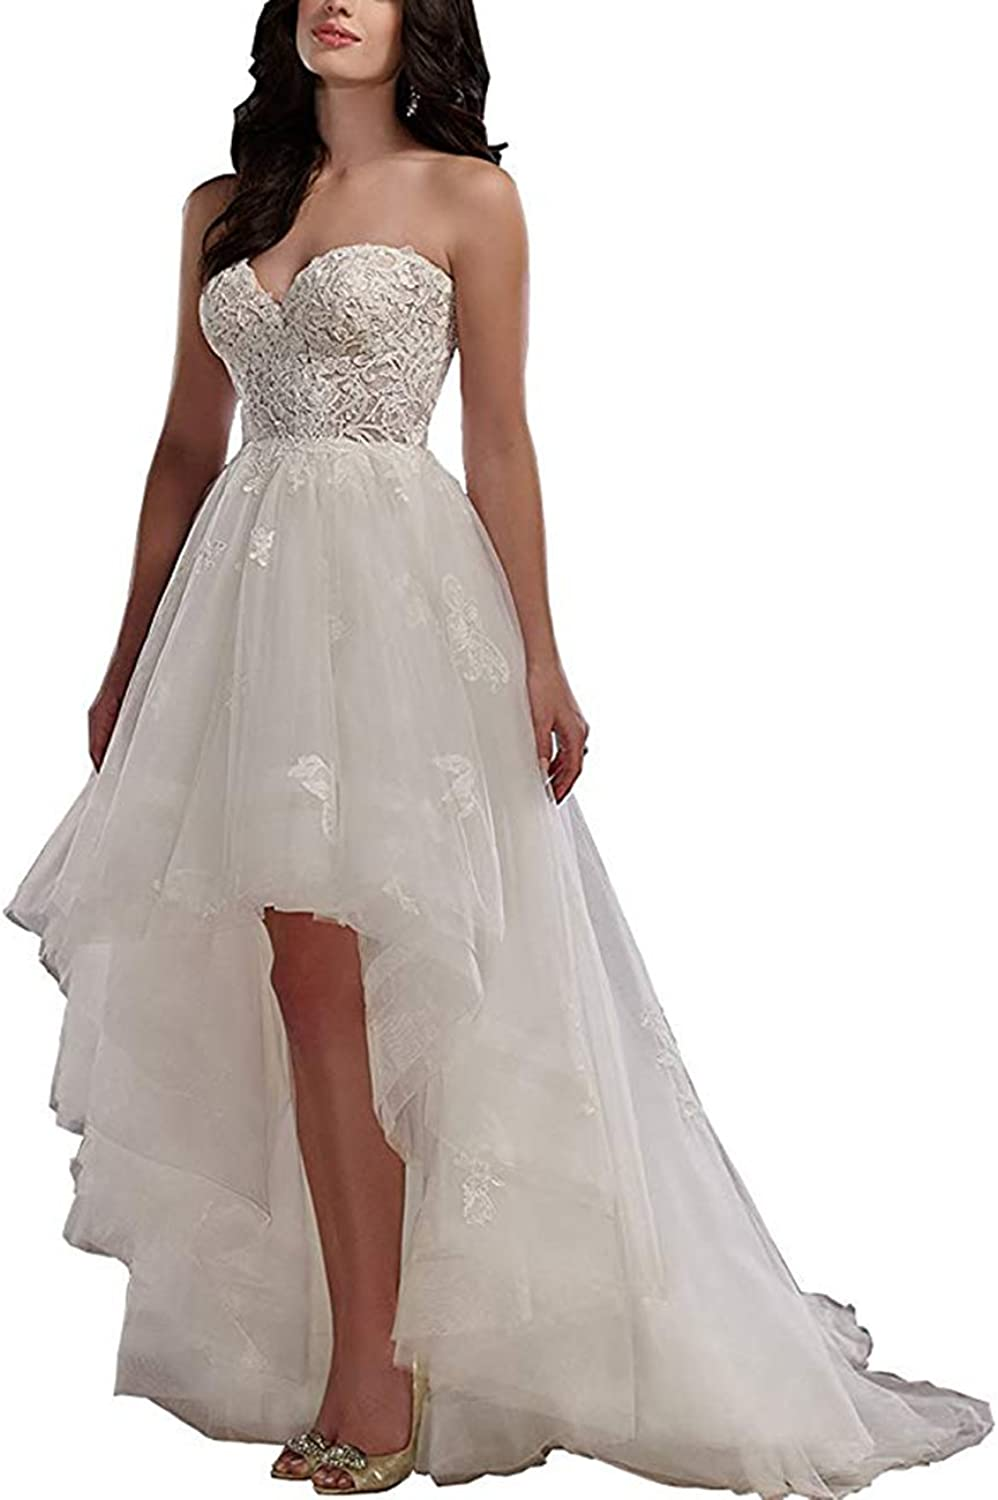 Ri Yun Women's Sweetheart Tulle High Low Wedding Dresses Bridal Gowns with Lace Appliques 2018